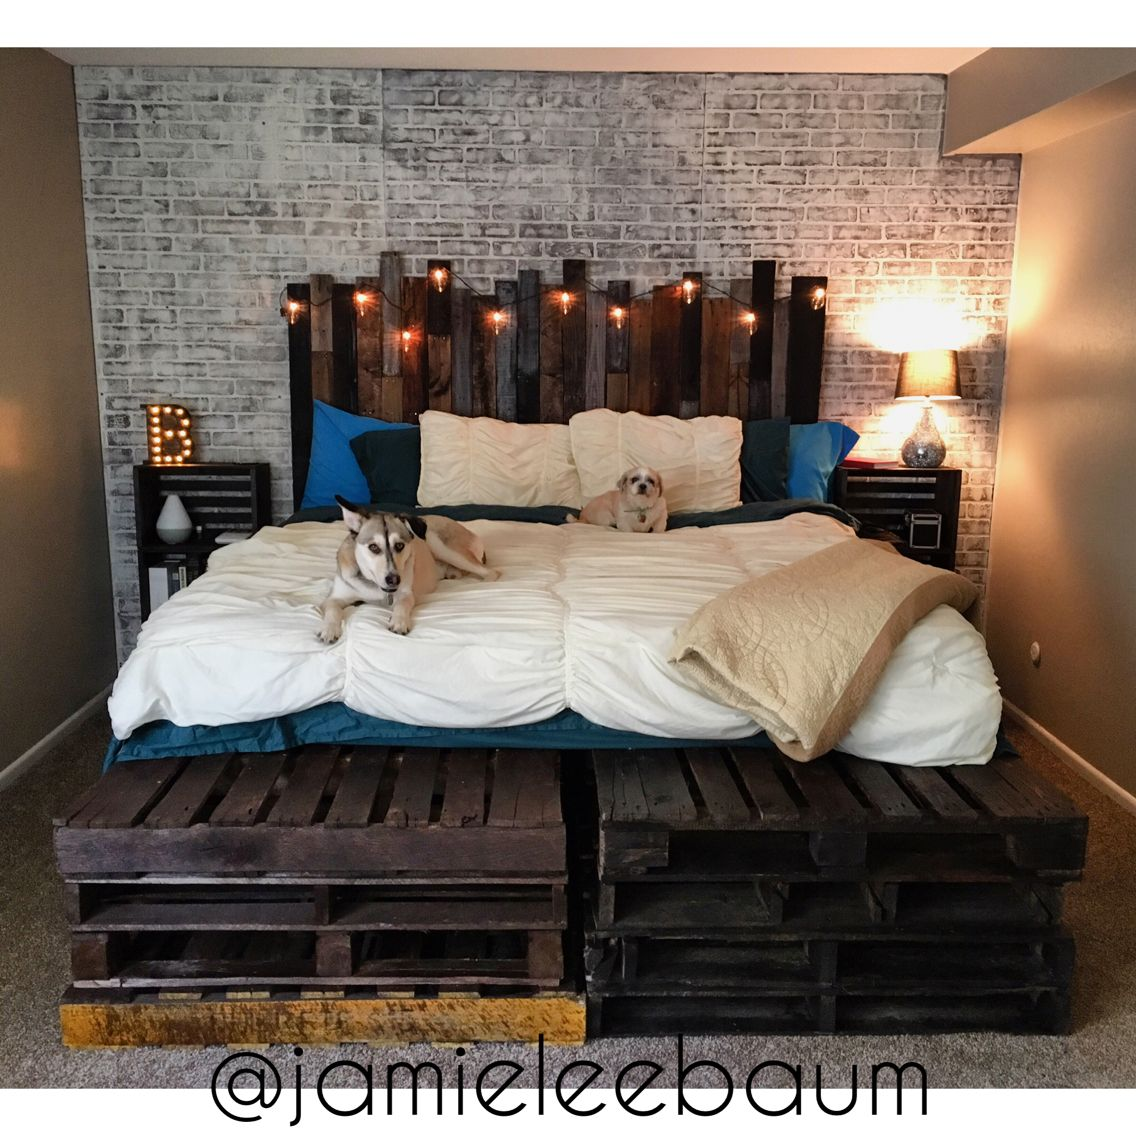 King size pallet bed and headboard diy rustic industrial for King size bed designs